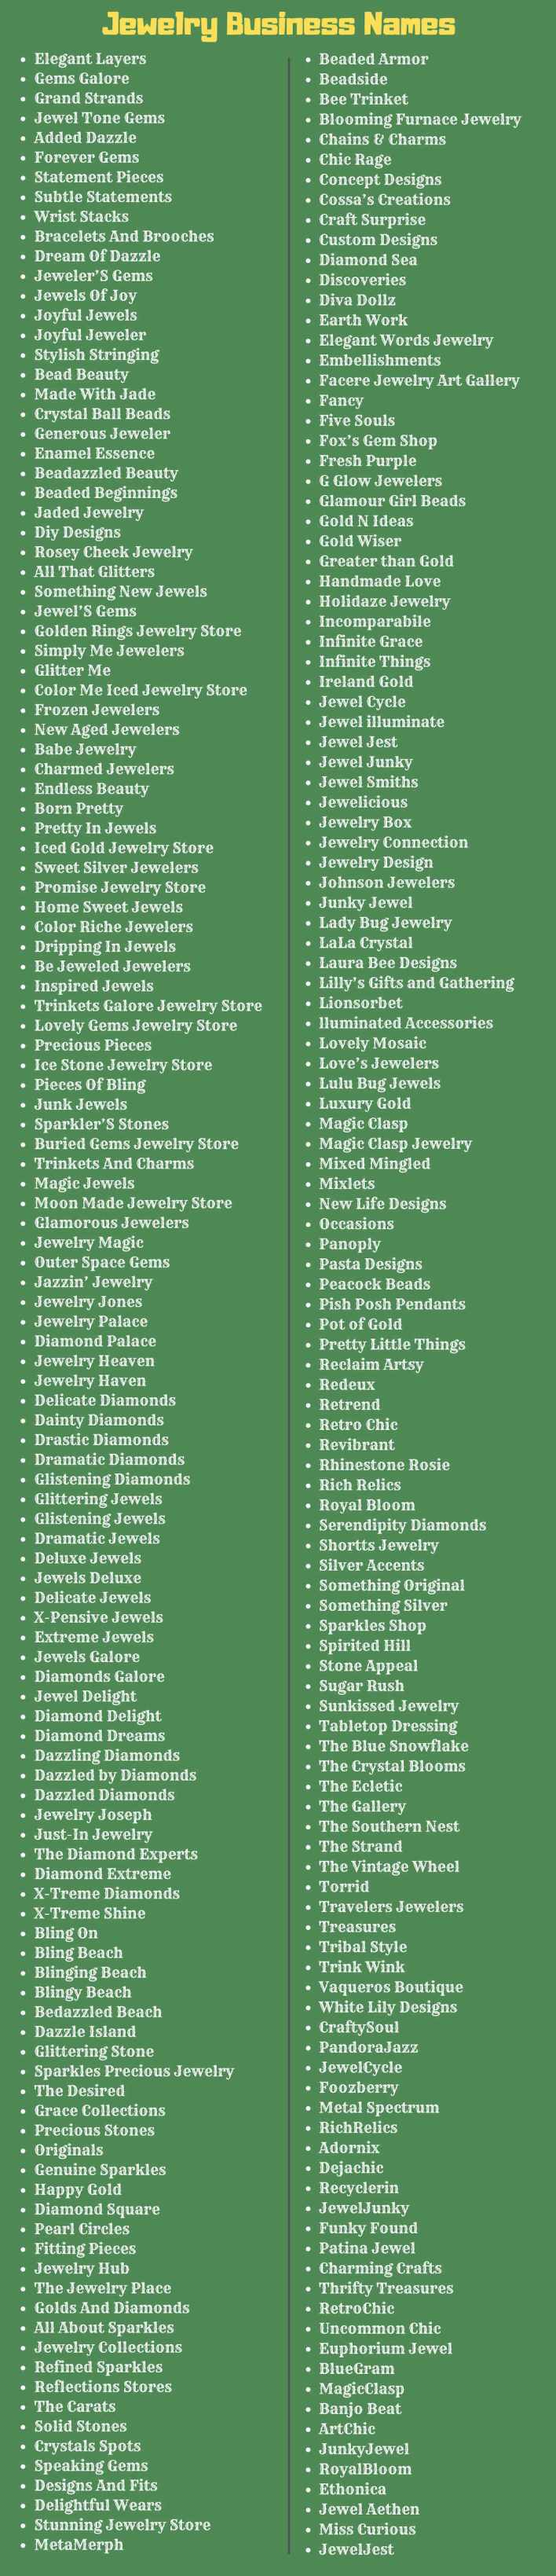 300 Catchy Jewelry Business Name Ideas Enlightening Words